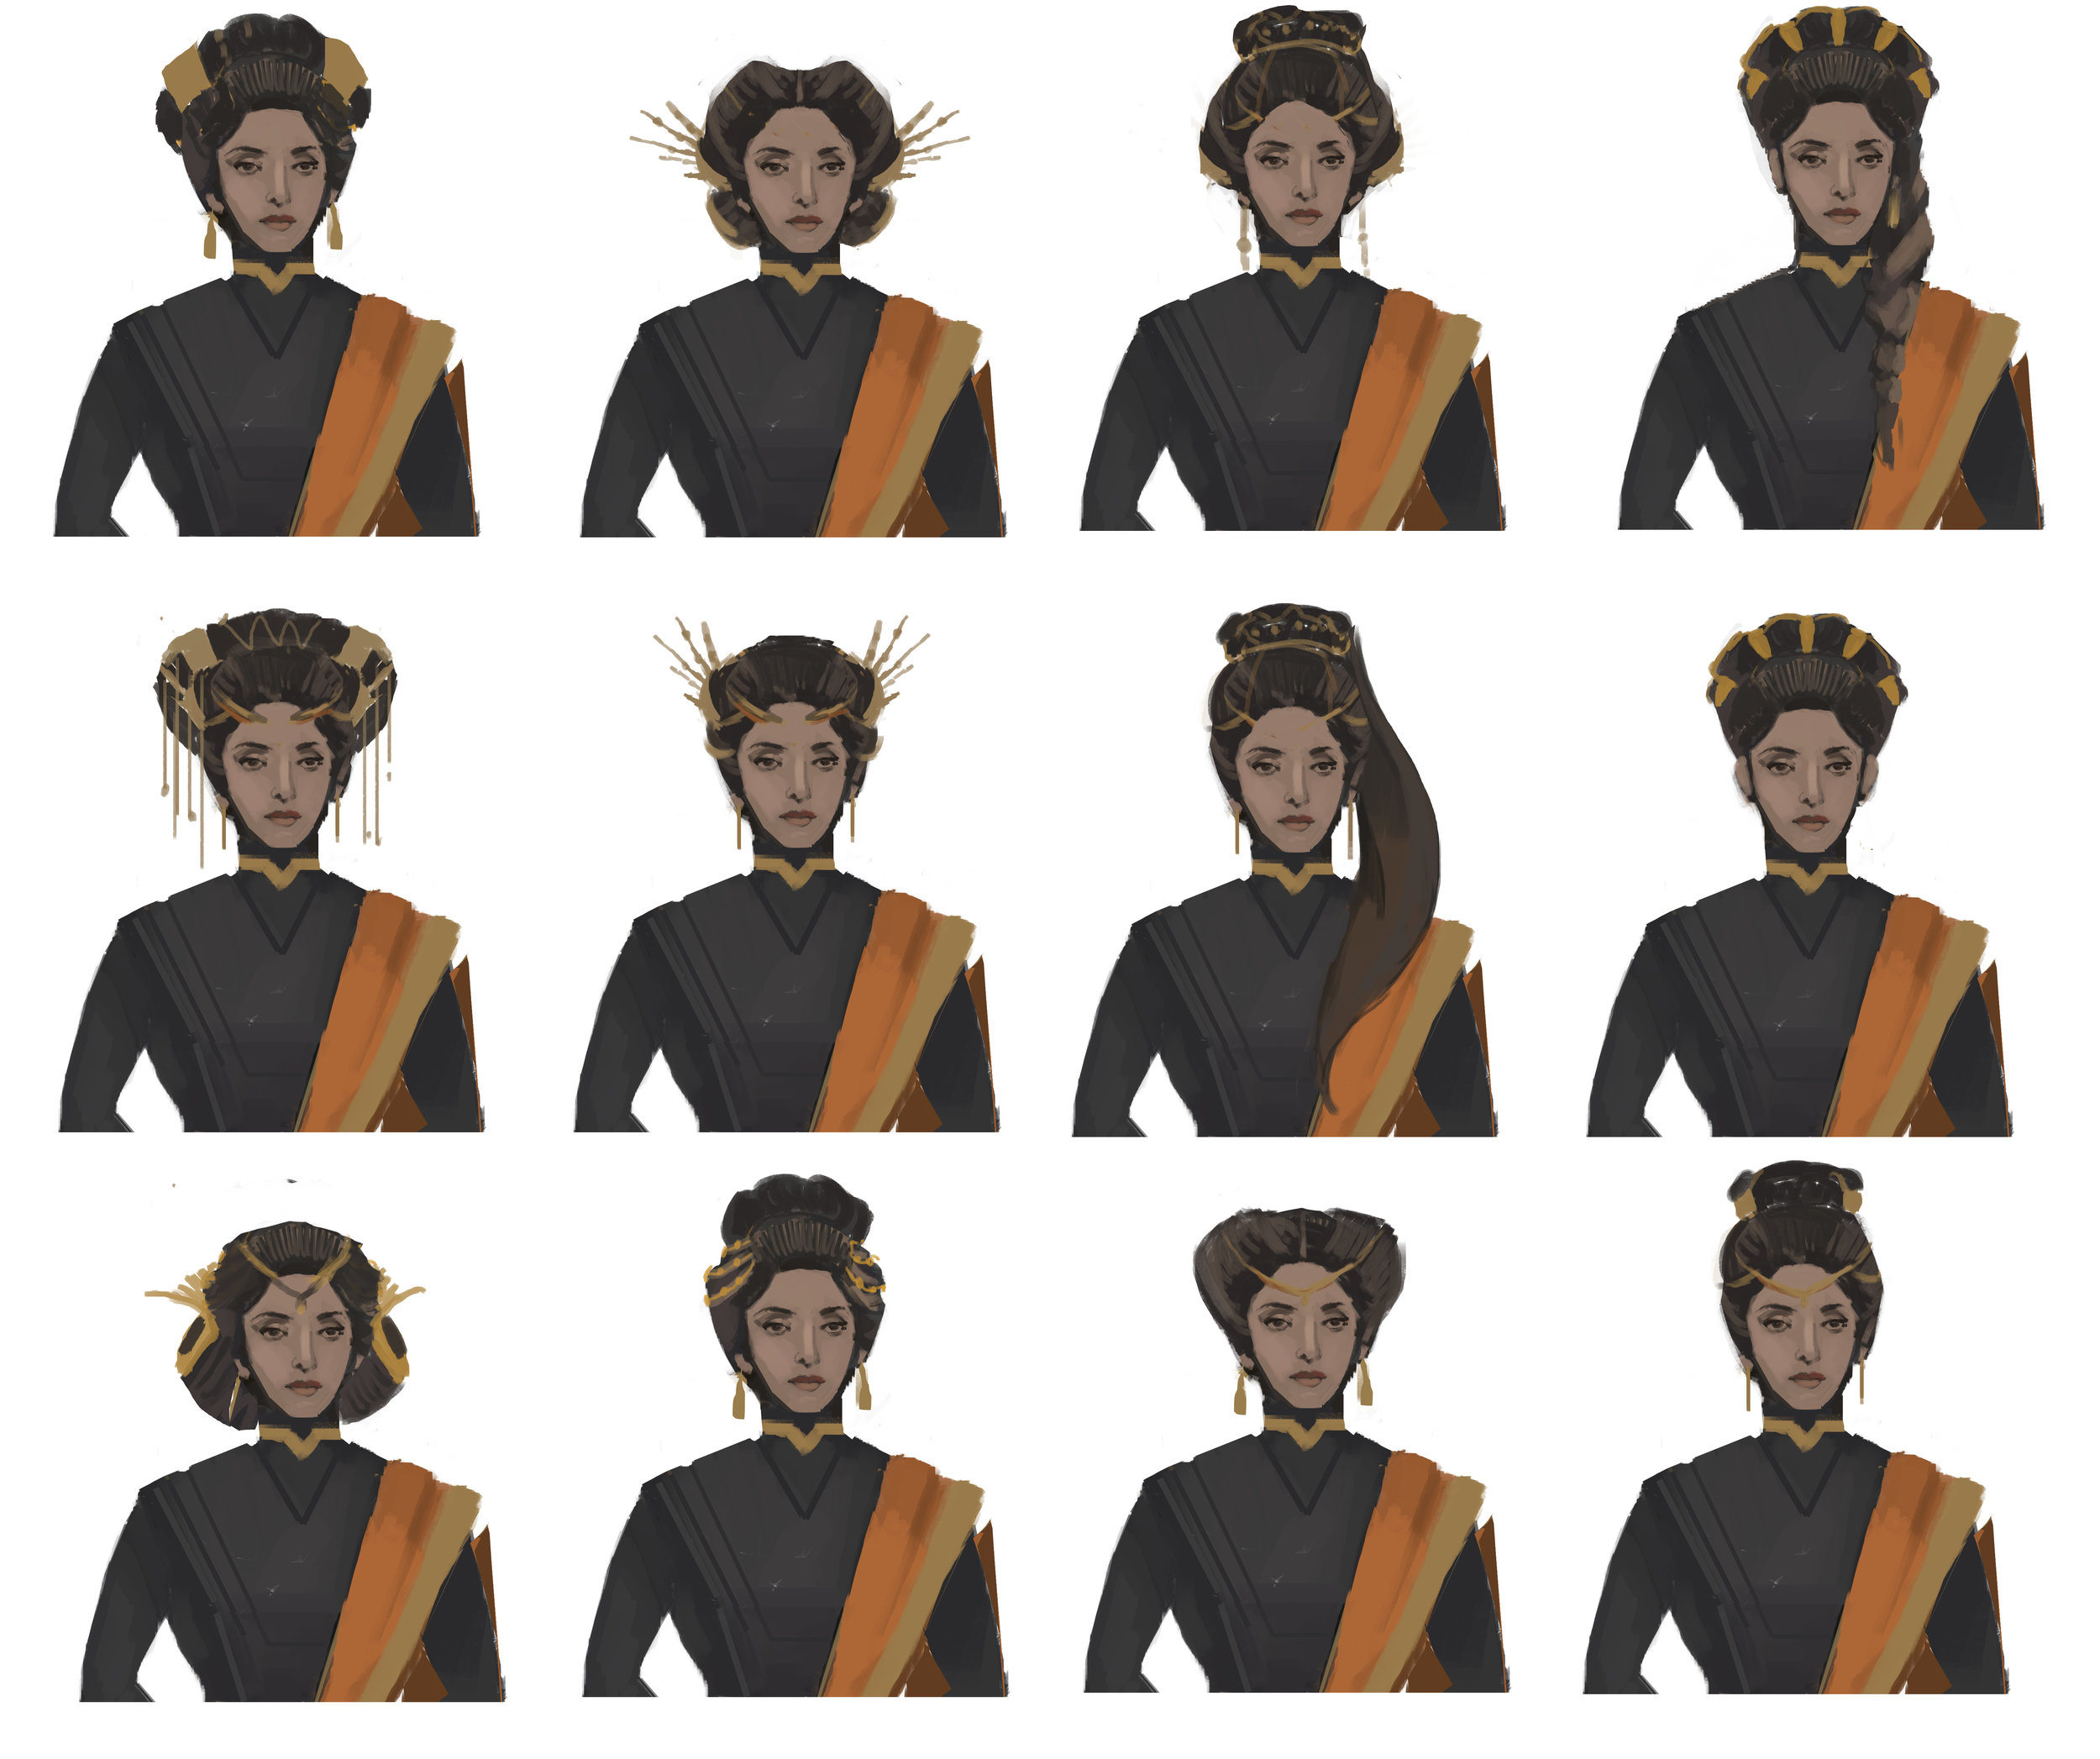 Hair design exploration after choosing a face type.